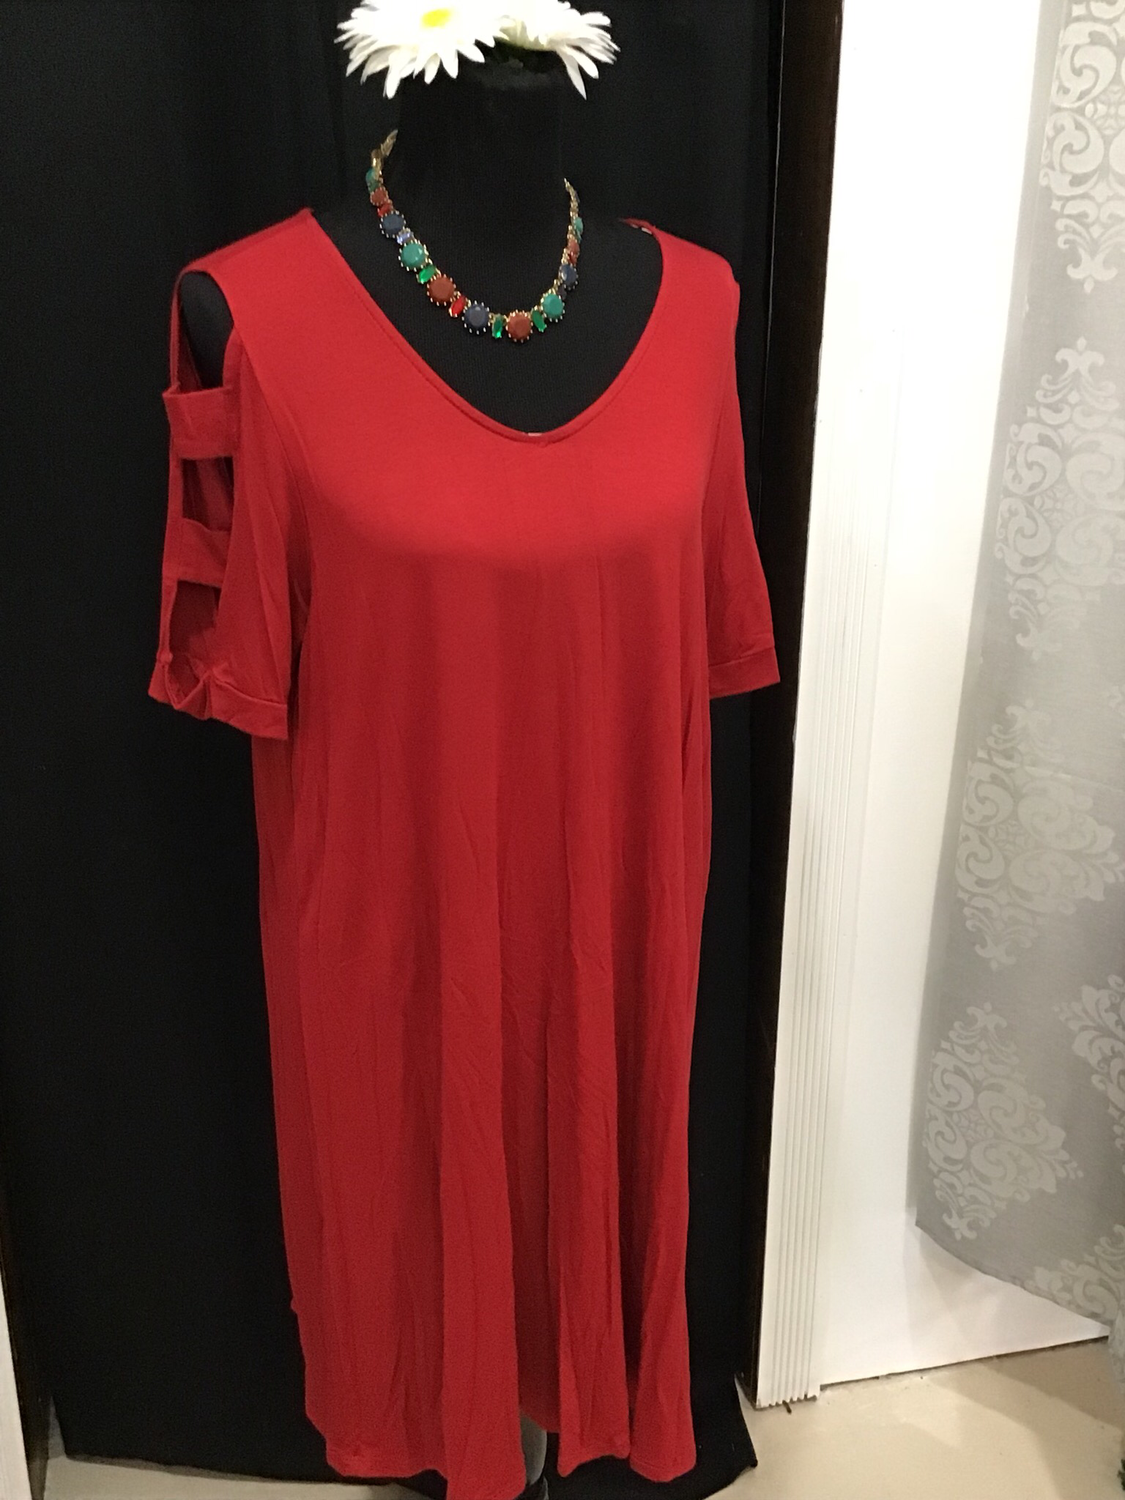 Red swing dress with arm cutouts